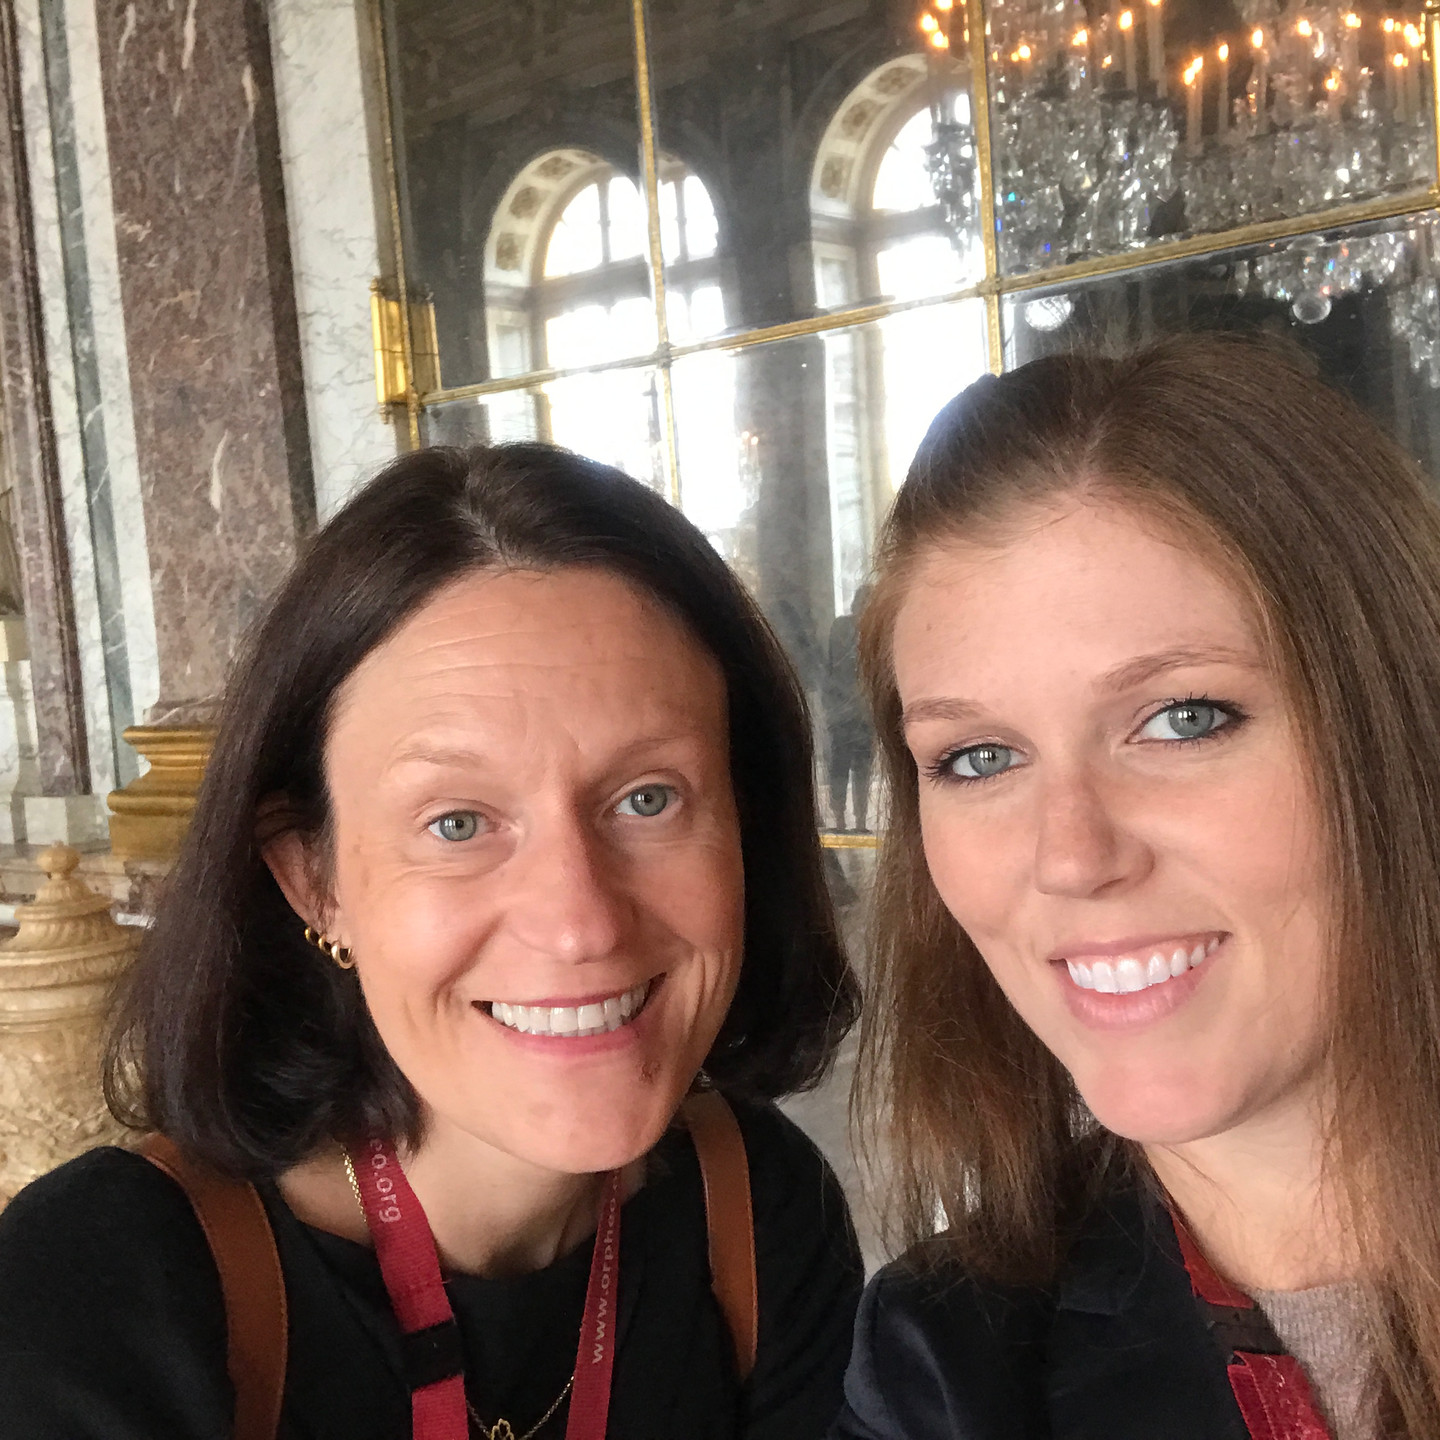 Laura Fox & Illia Schwarz in the Hall of Mirrors at Versailles